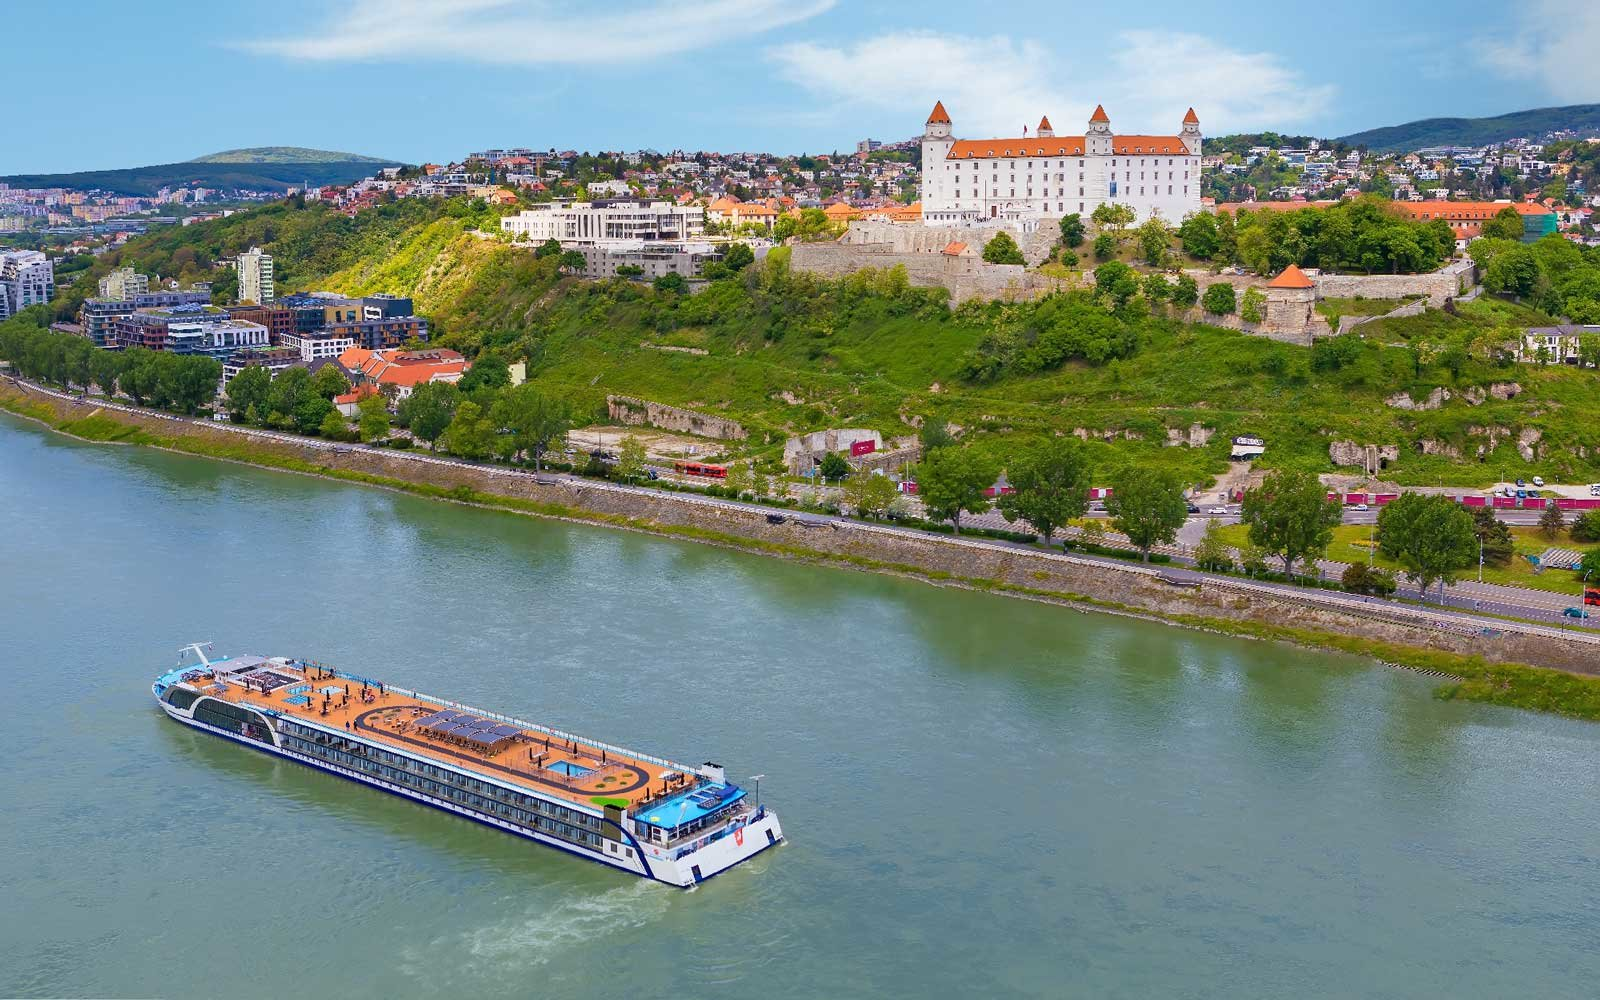 AmaMagna by AmaWaterways, Danube River